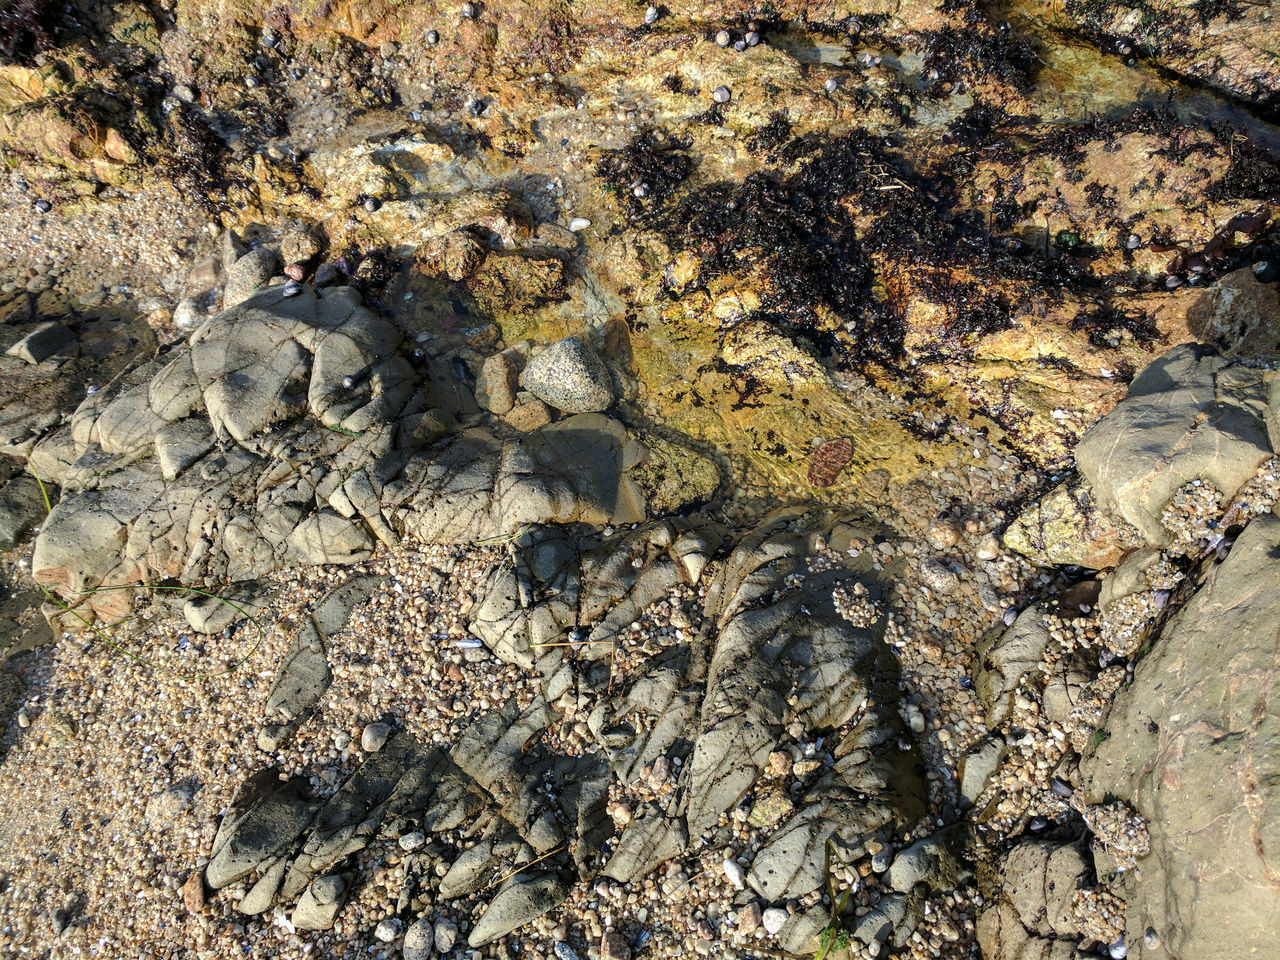 Close up of a small tide pool in rocks Backgrounds Beach Beauty In Nature Close-up Day Full Frame High Angle View Nature No People Ocaña Outdoors Rocks And Water Sand Sunlight Teture Tide Pool Walking Tide Pools And Rock Formations Tidepool Walking Tidepools Water